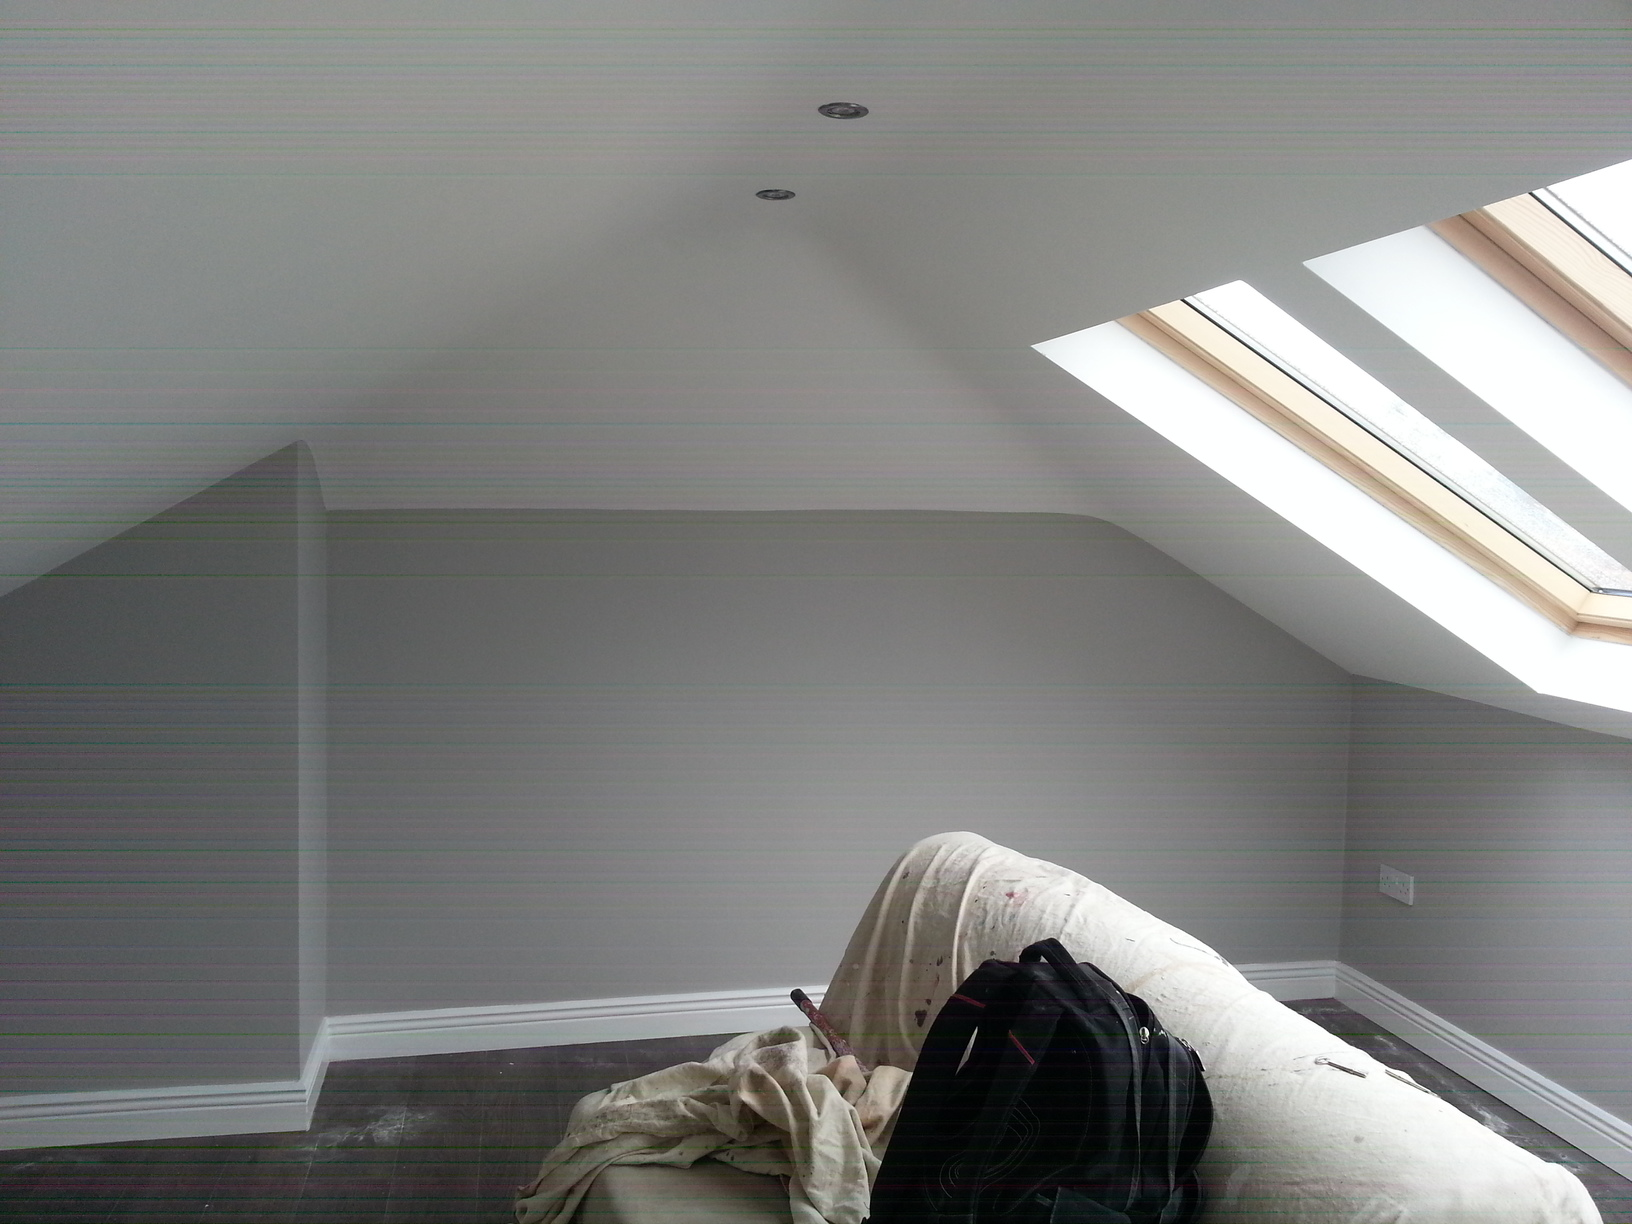 view pictures and photos for slattery painting decorating i have